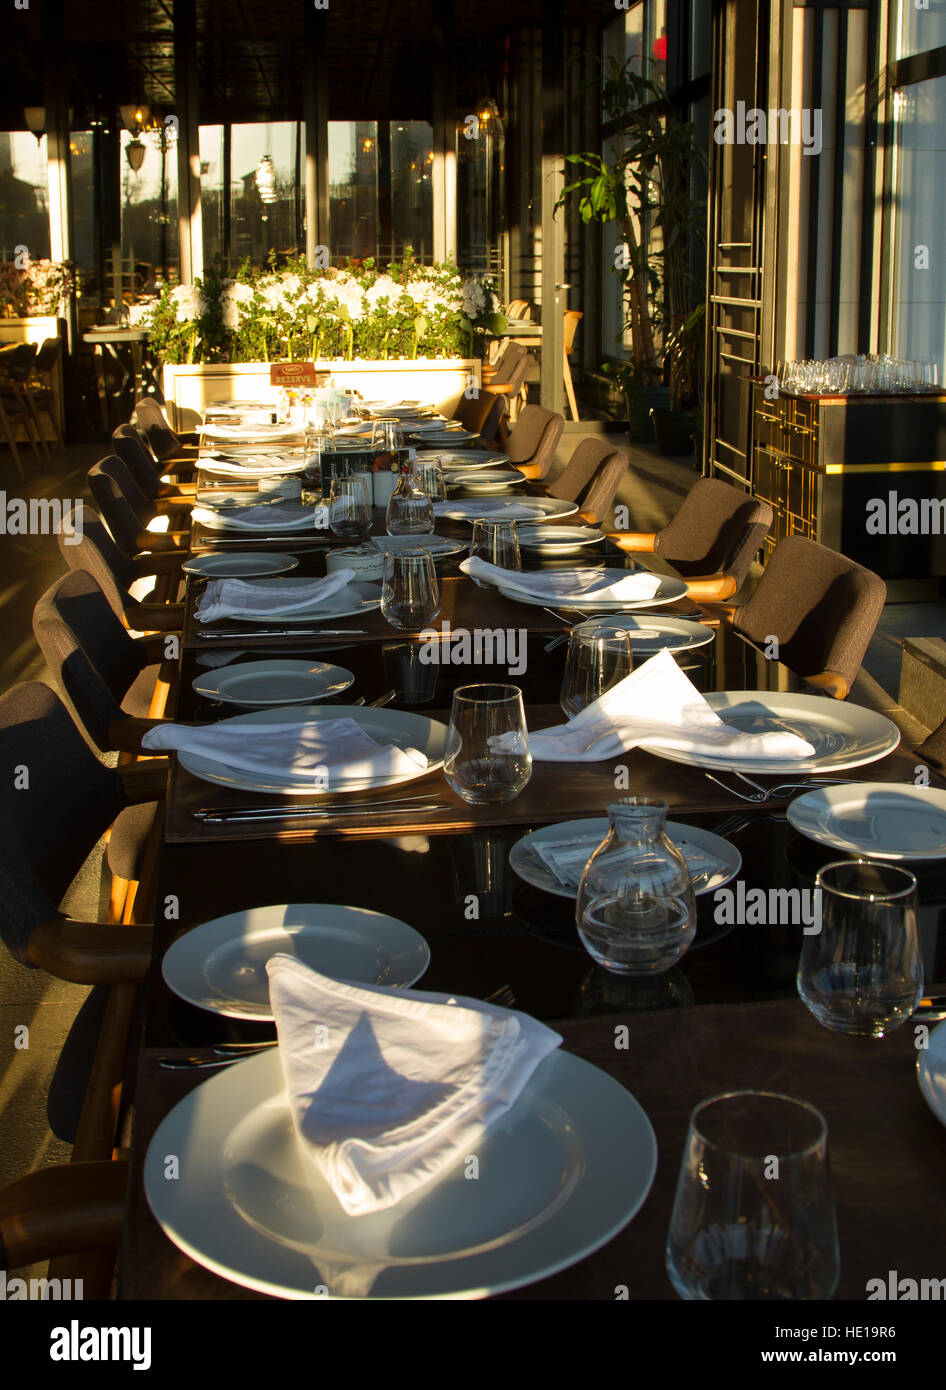 Long table in the restaurand served for several persons with glasses, plates - Stock Image